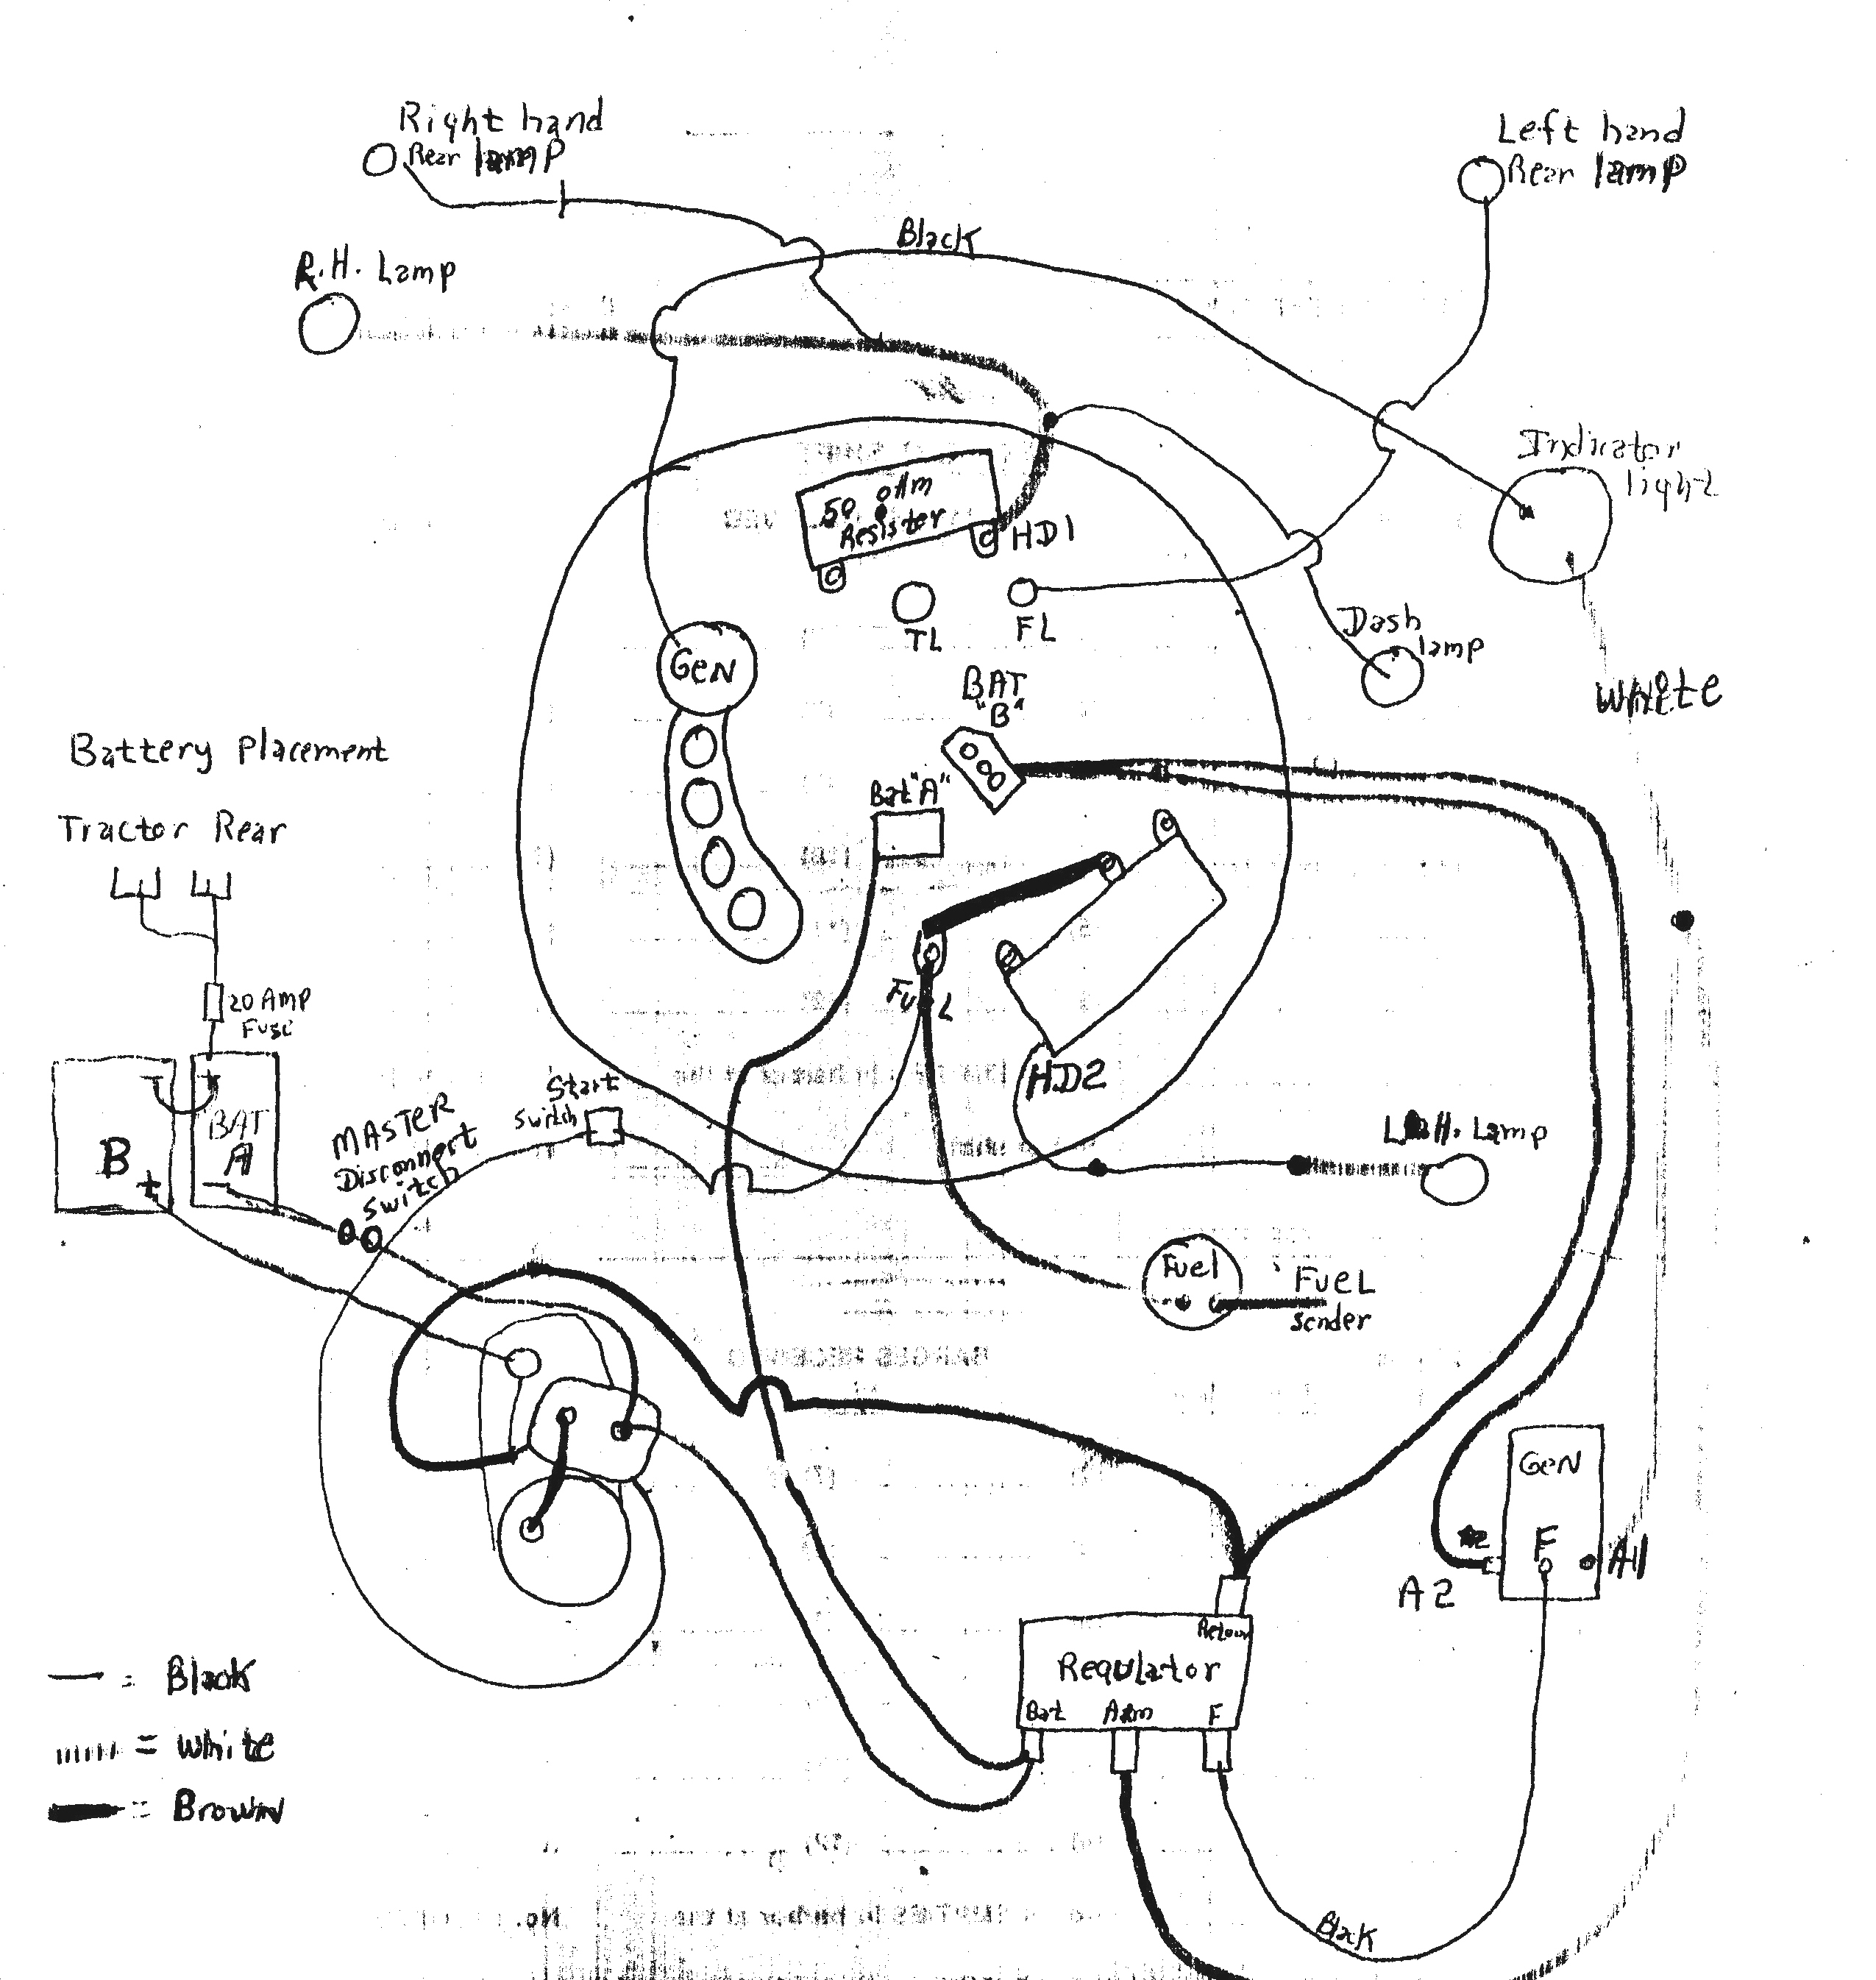 24 volt wiring diagram wiring harness wiring diagram wiring